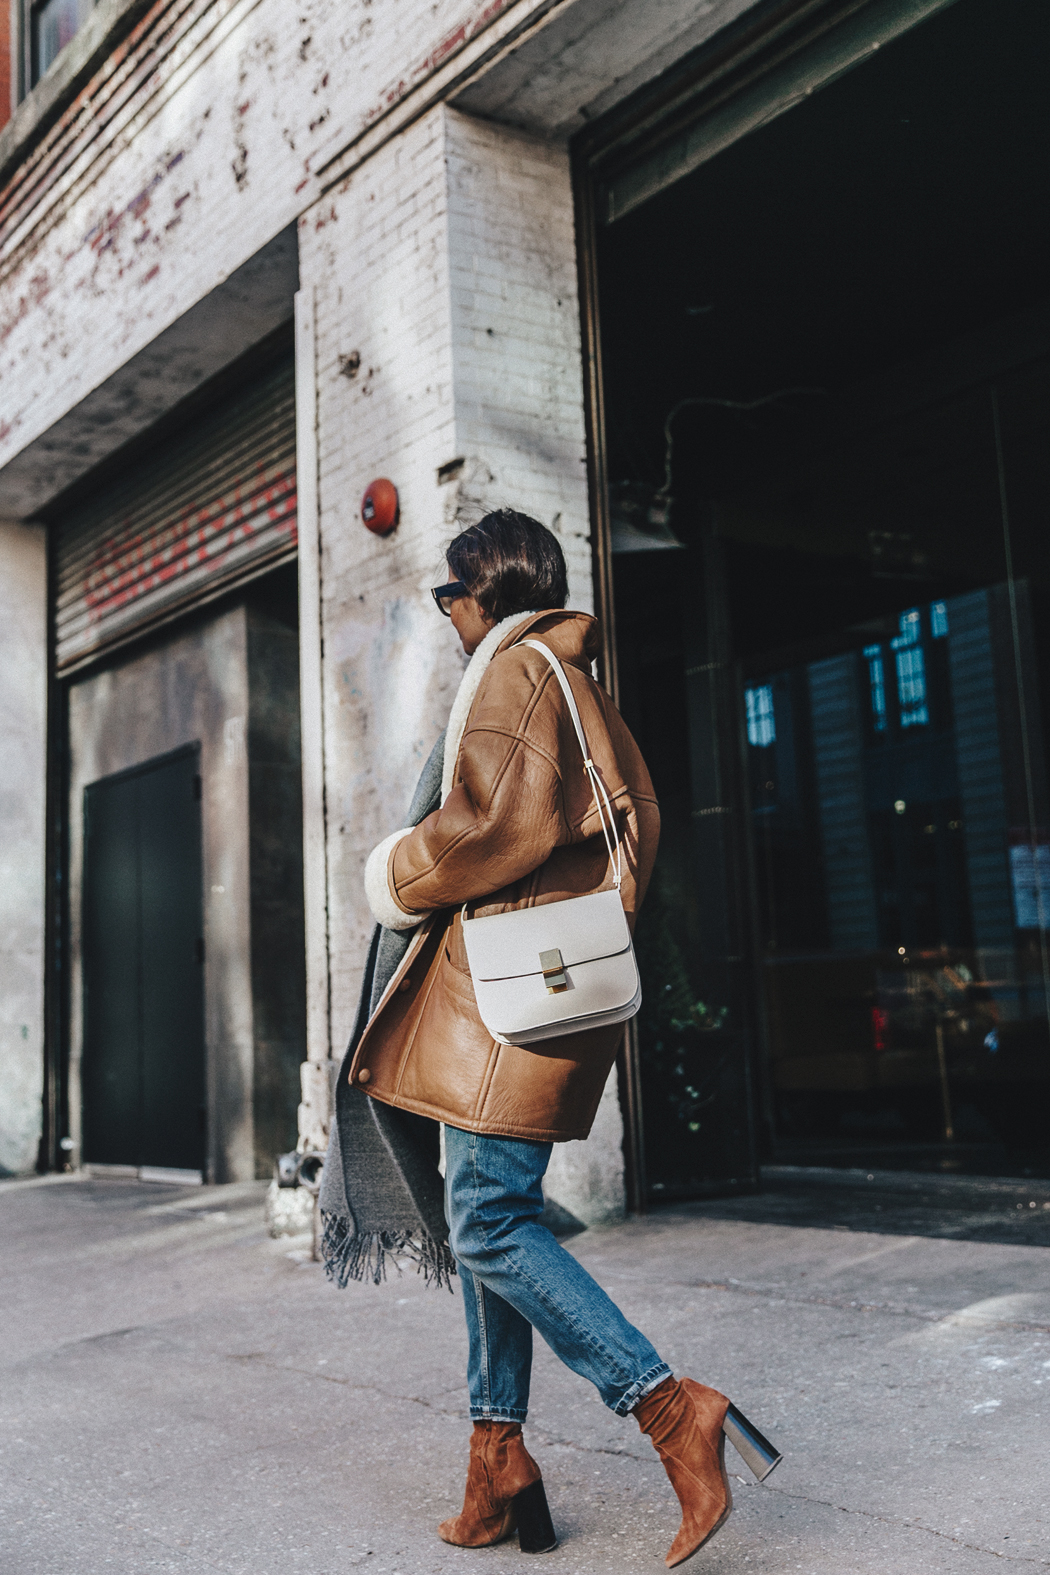 Denim_Lover-Topshop_Jeans-Vintage_Coat-Grey_Scarf-Brown_Booties-Navy_Sweayer-Denim_Shirt-Braids-NYFW-New_York_Fashion_Week-Street_style-Celine_Bag-Vestiaire_Collective-50